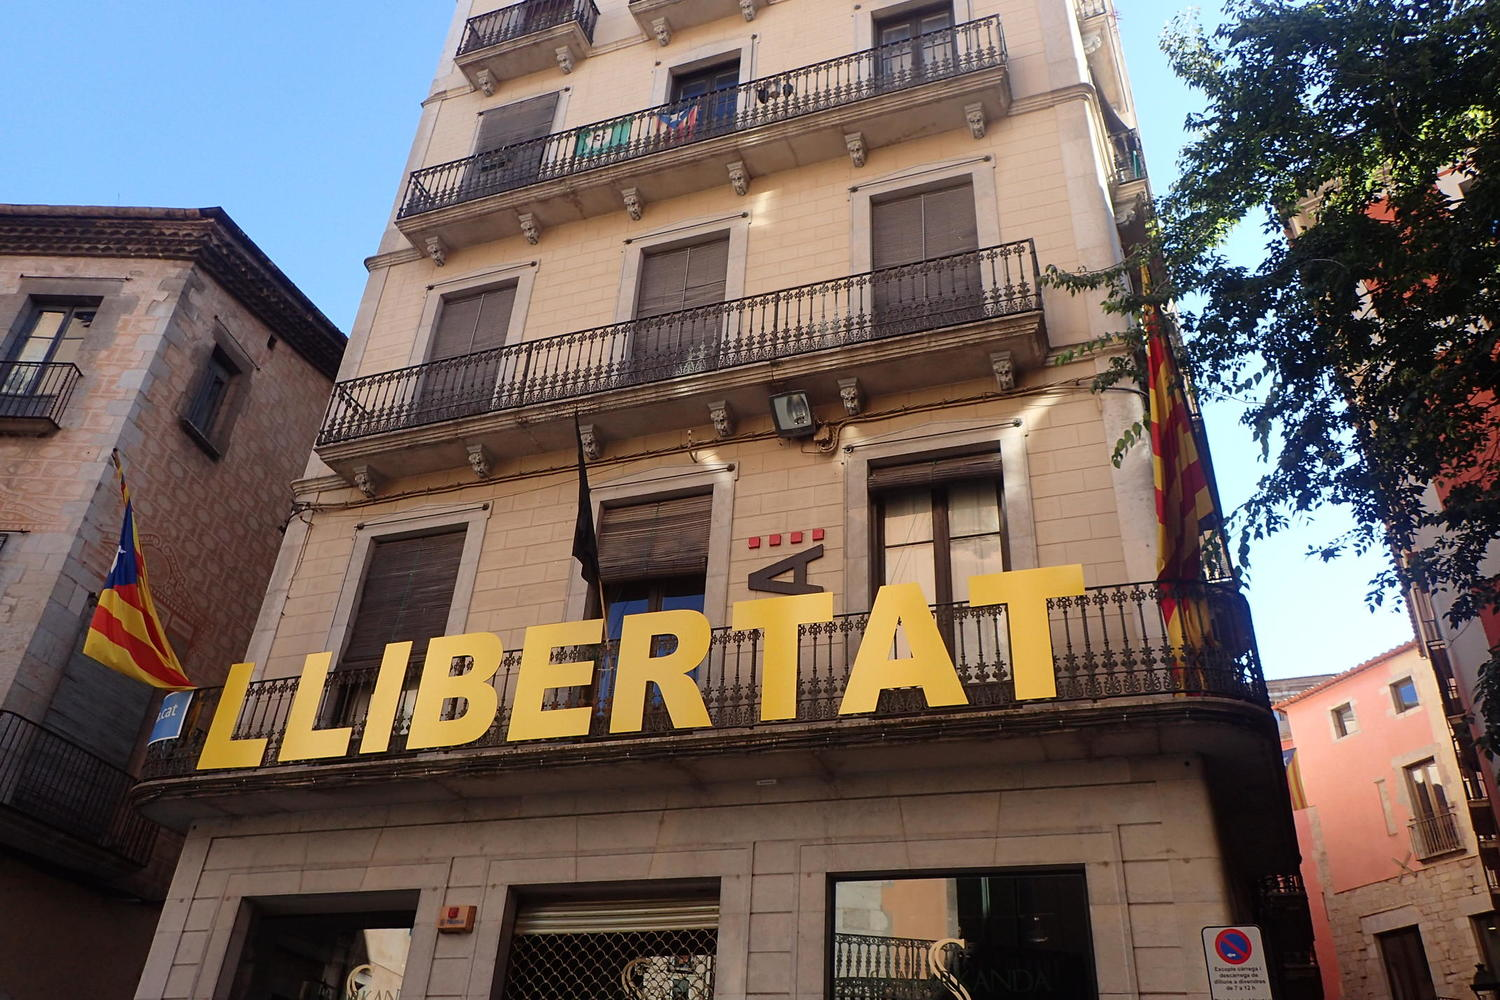 Yellow political statements on the streets of Catalonia